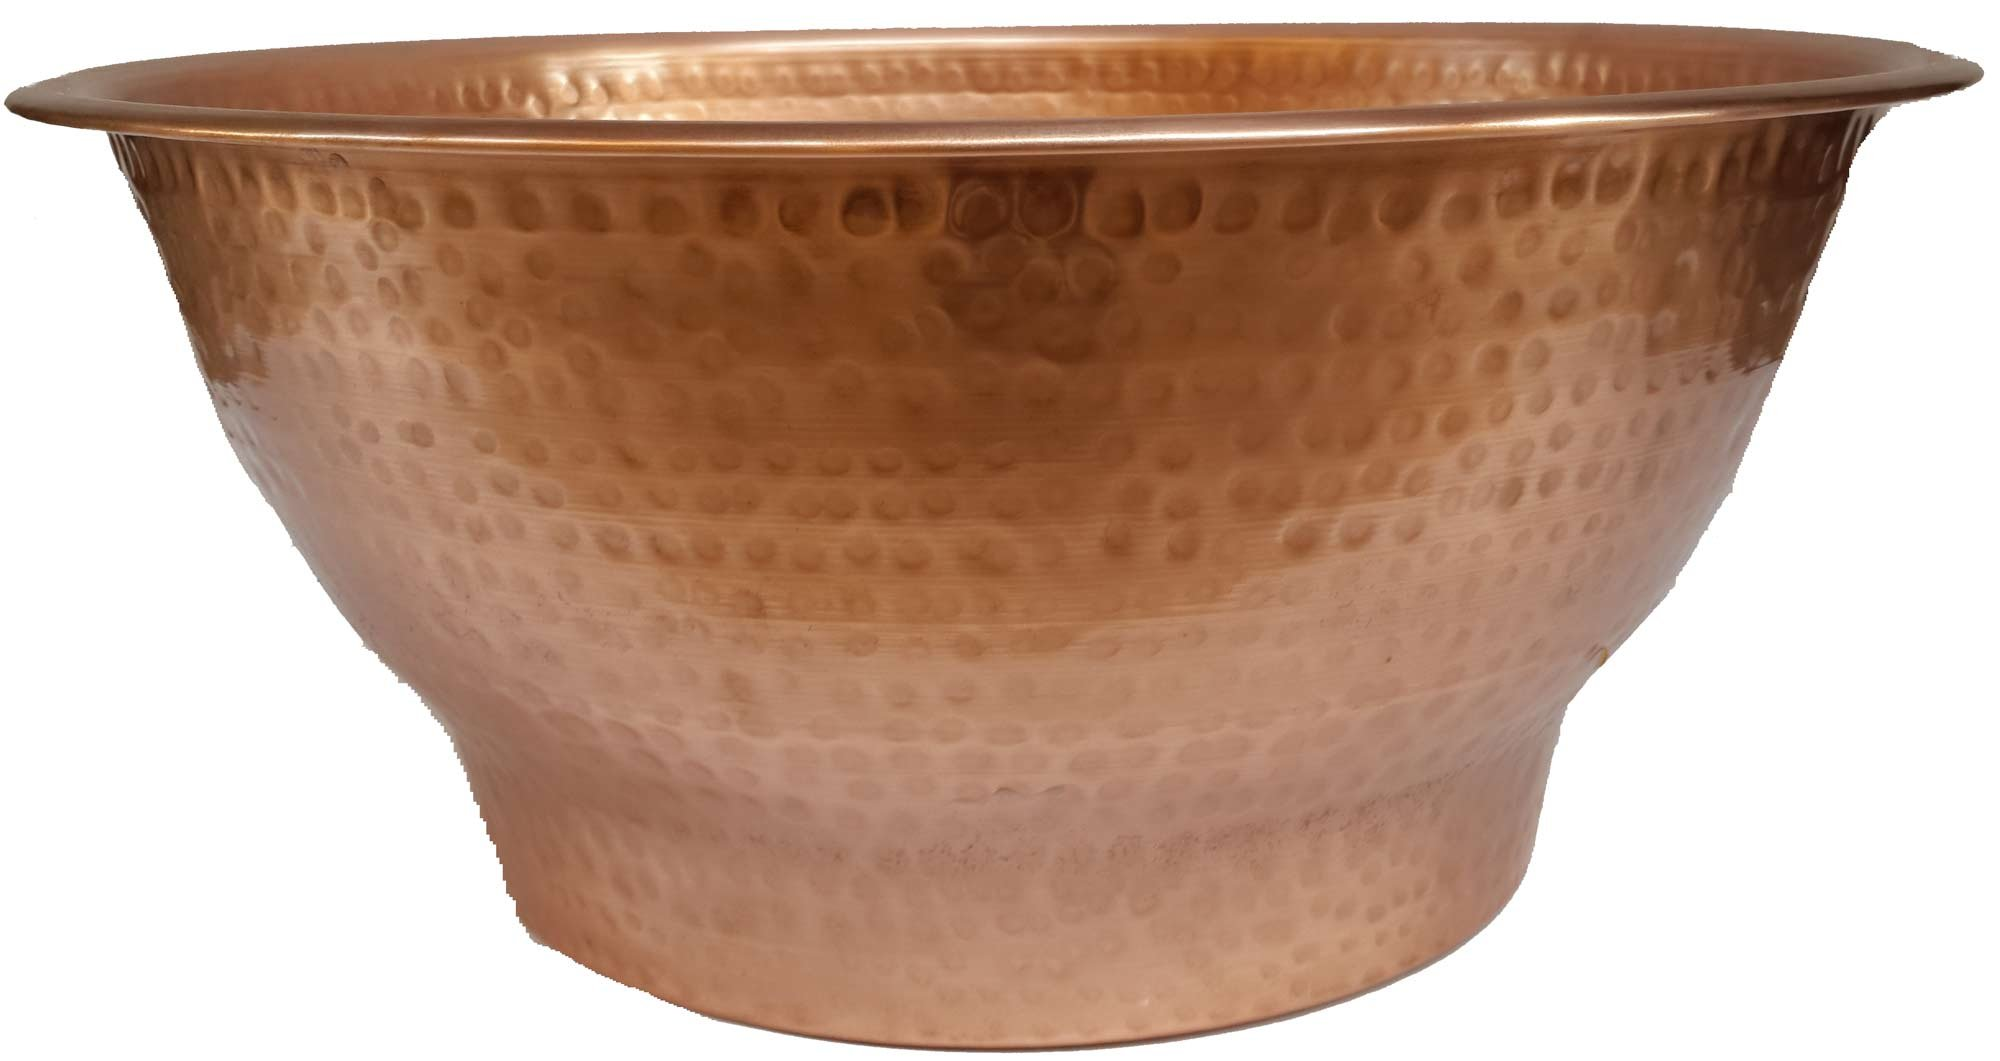 Egypt gift shops Deep Copper Pedicure Foot Massage Therapy Spa Bowl